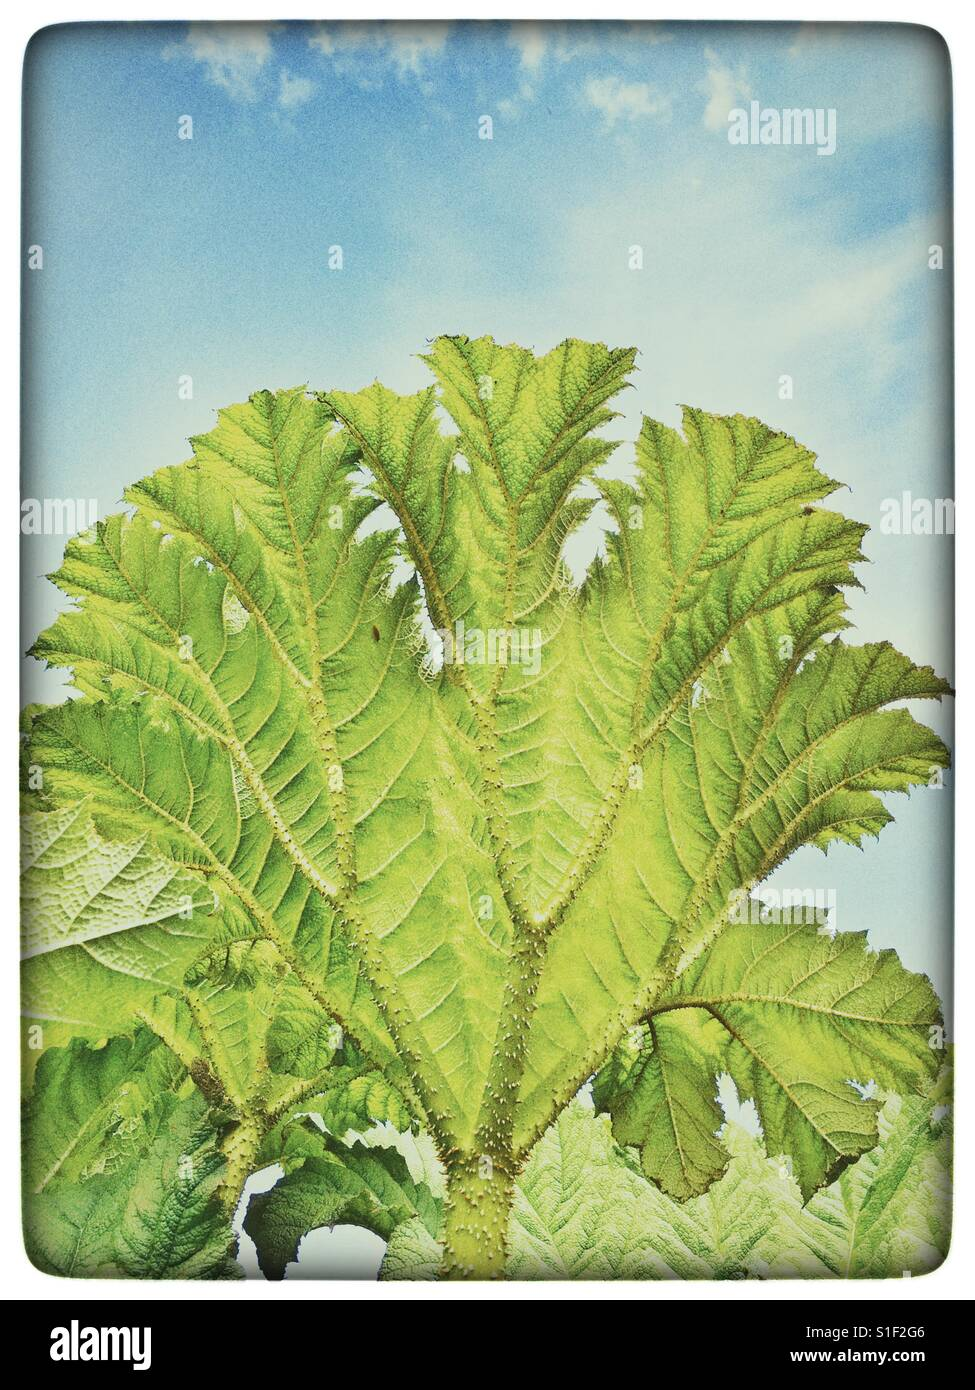 Day of the Triffids - Stock Image